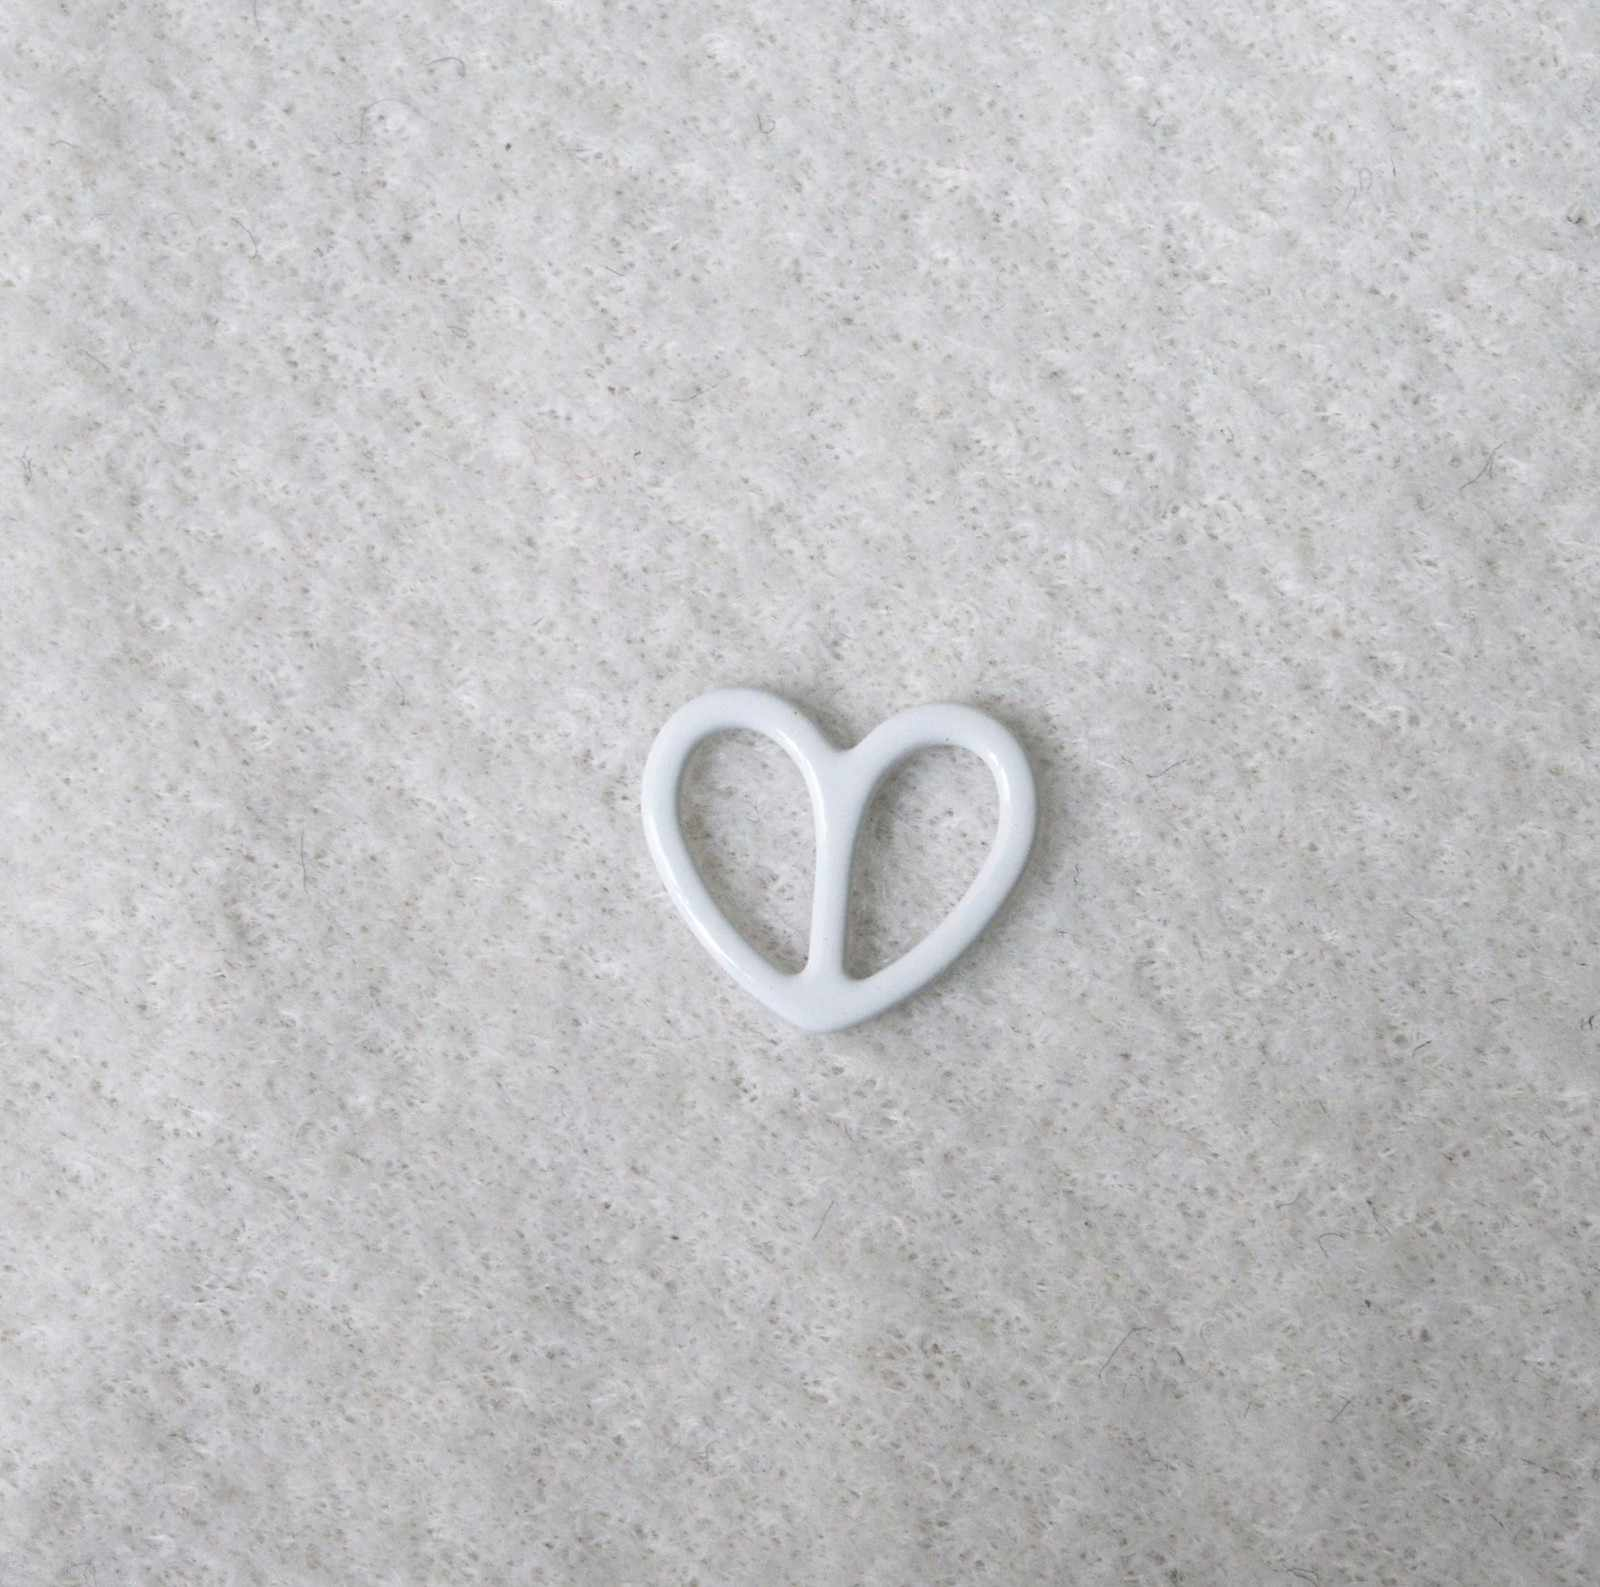 Mayrose-Professional Metal Strap Adjuster Buckle Nylon Coated Heart Shape